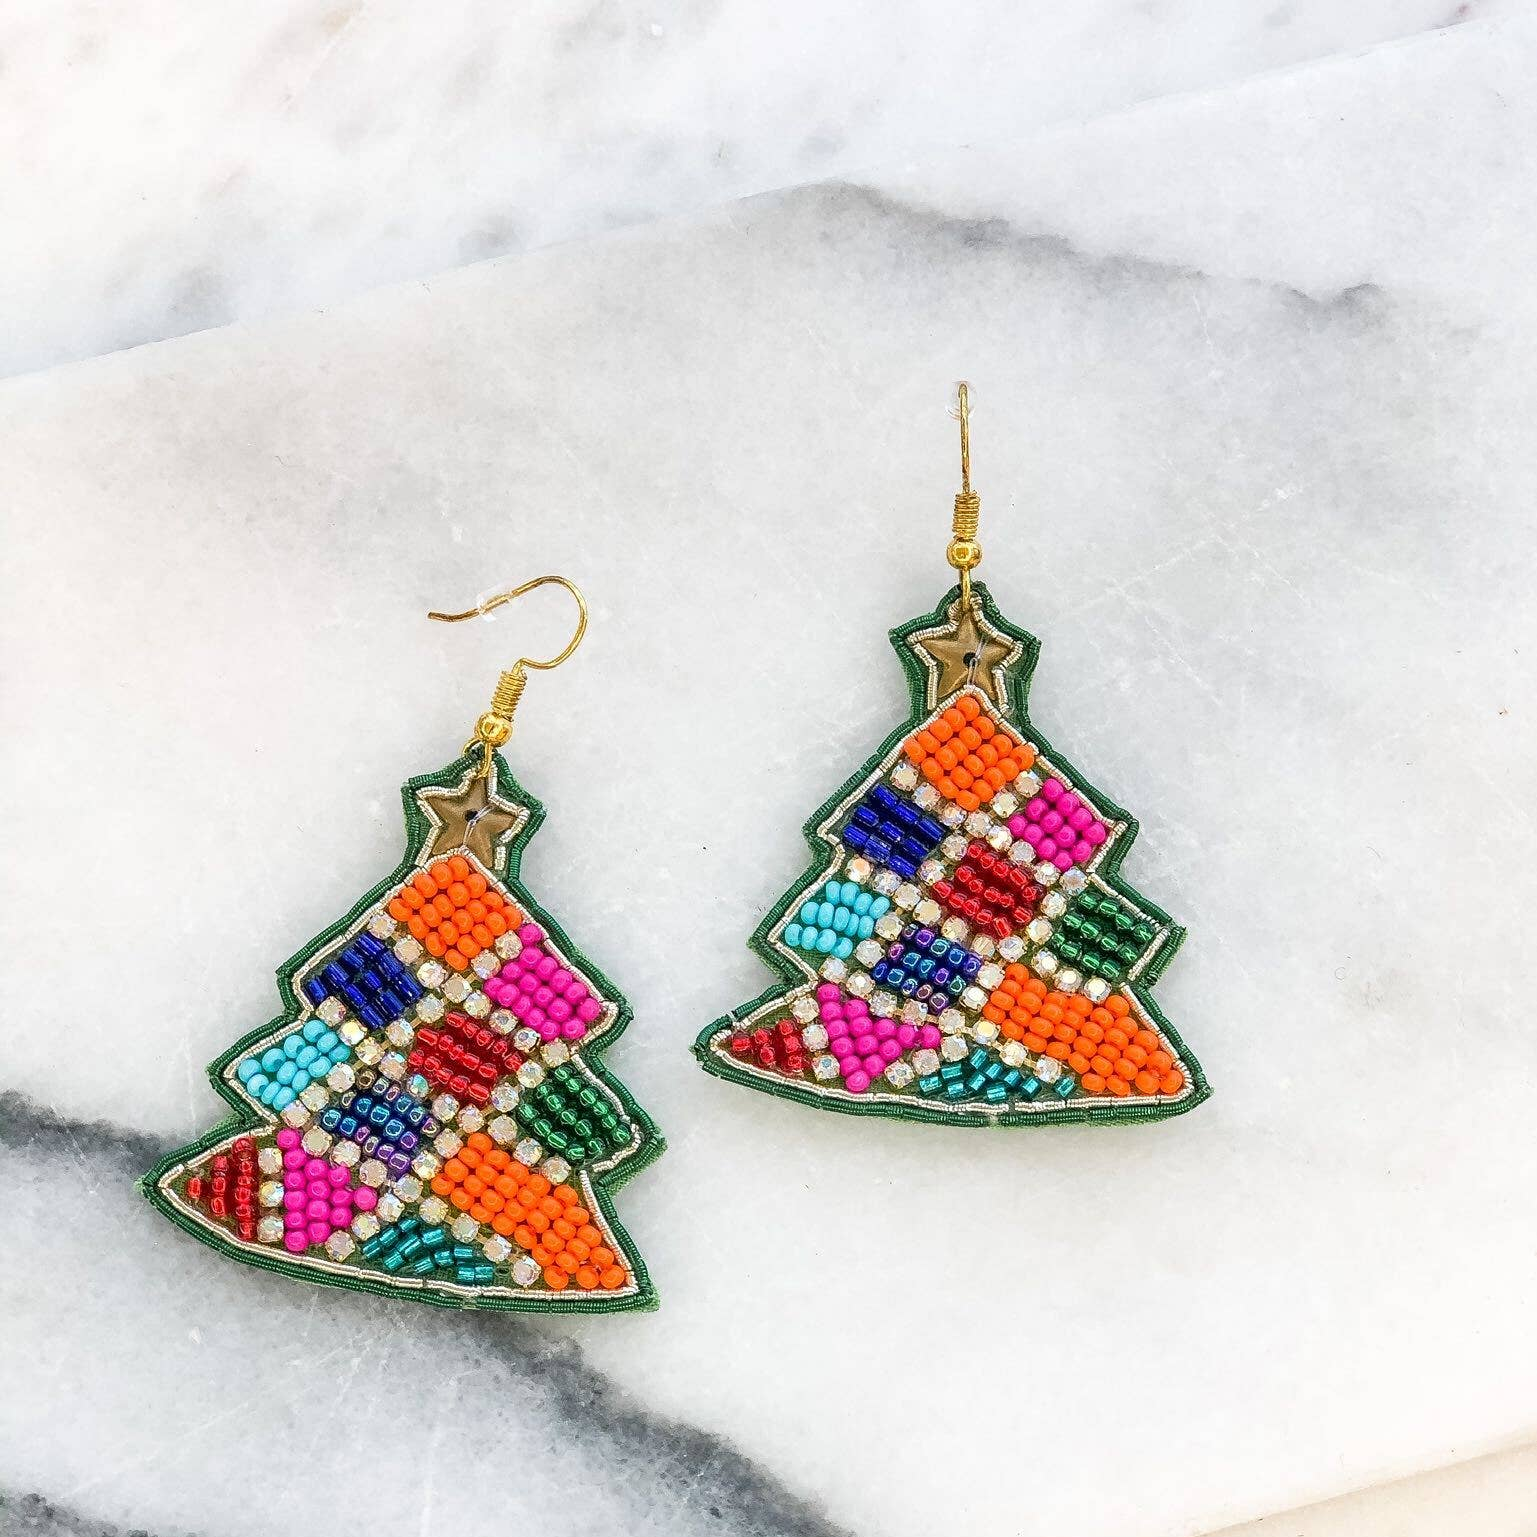 Fun and festive beaded Christmas tree earrings.   2.5 in long.